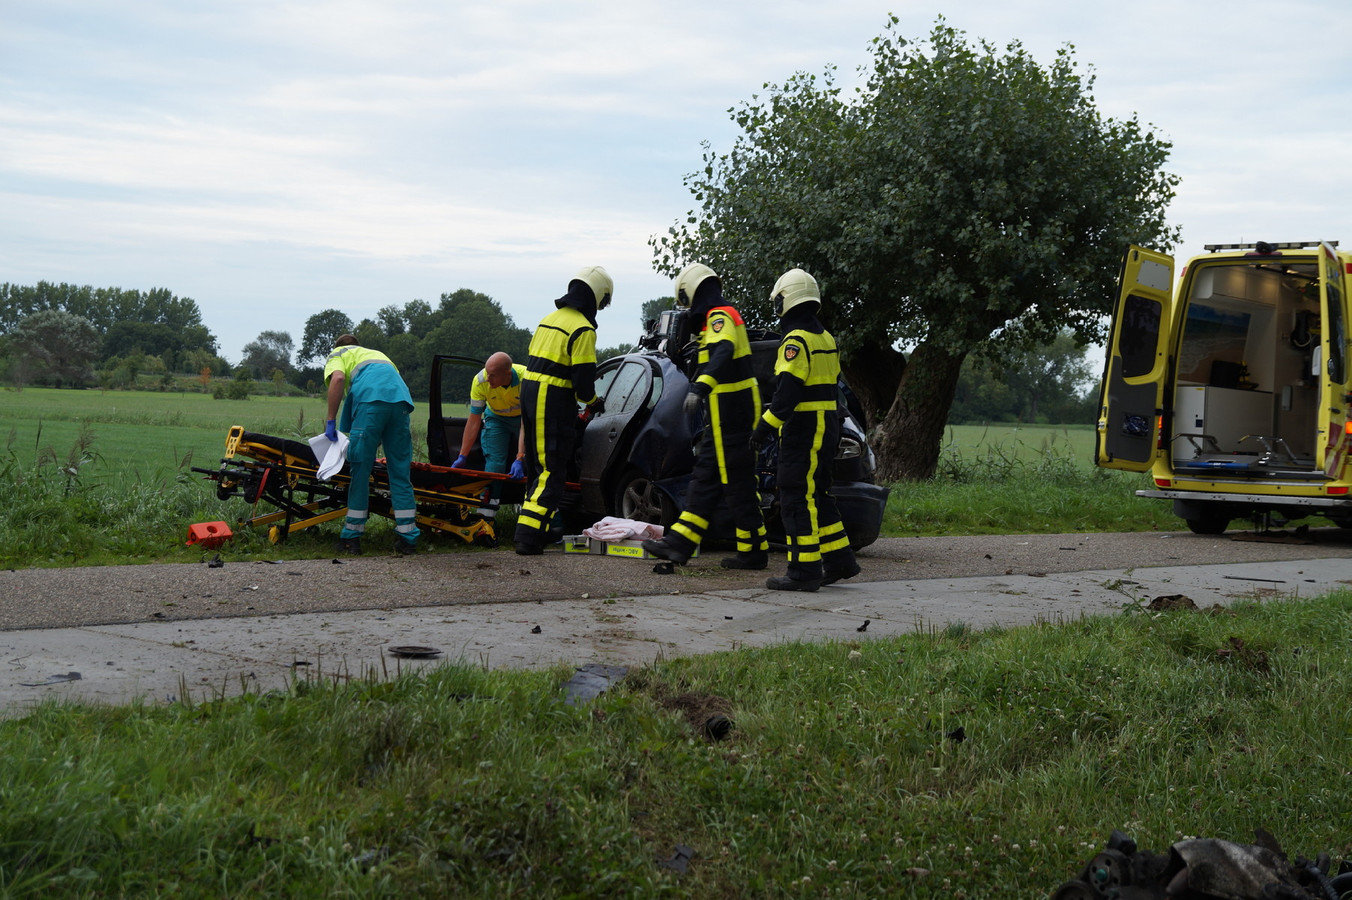 De man is door ambulancepersoneel uit de auto gehaald.